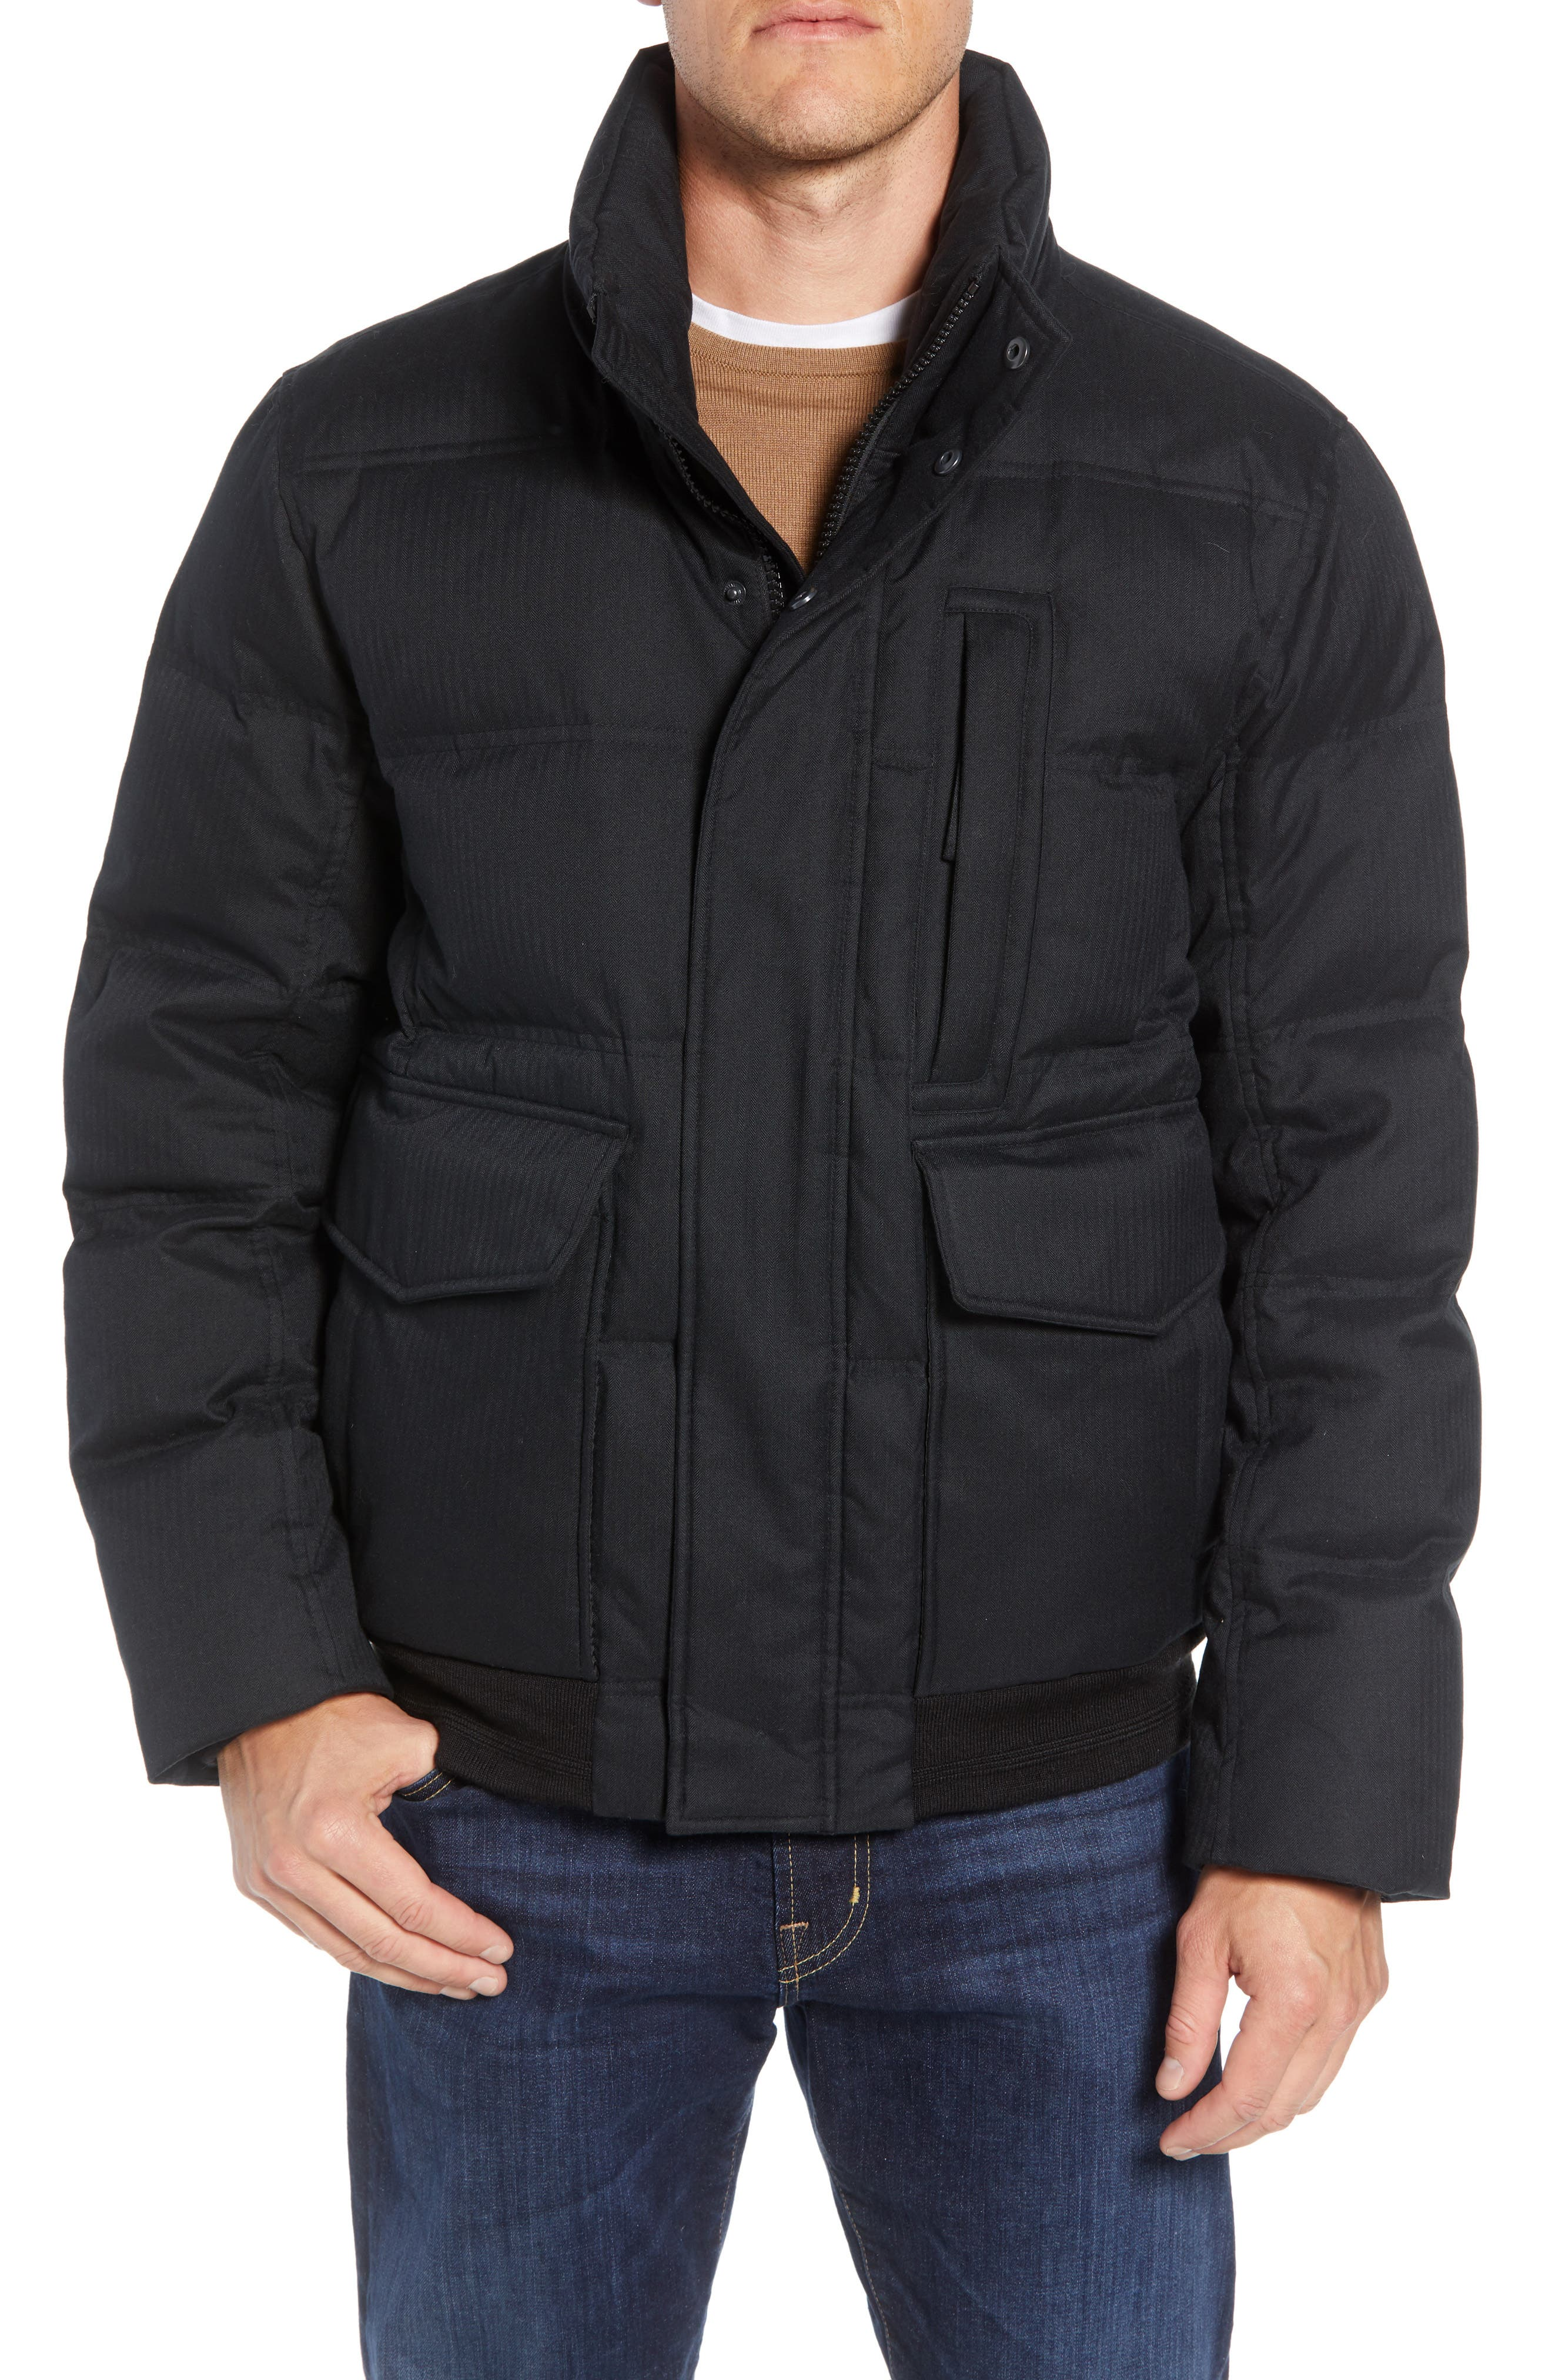 Bohlen Down & Feather Bomber Jacket with Removable Genuine Coyote Fur Trim Hood,                             Alternate thumbnail 2, color,                             BLACK